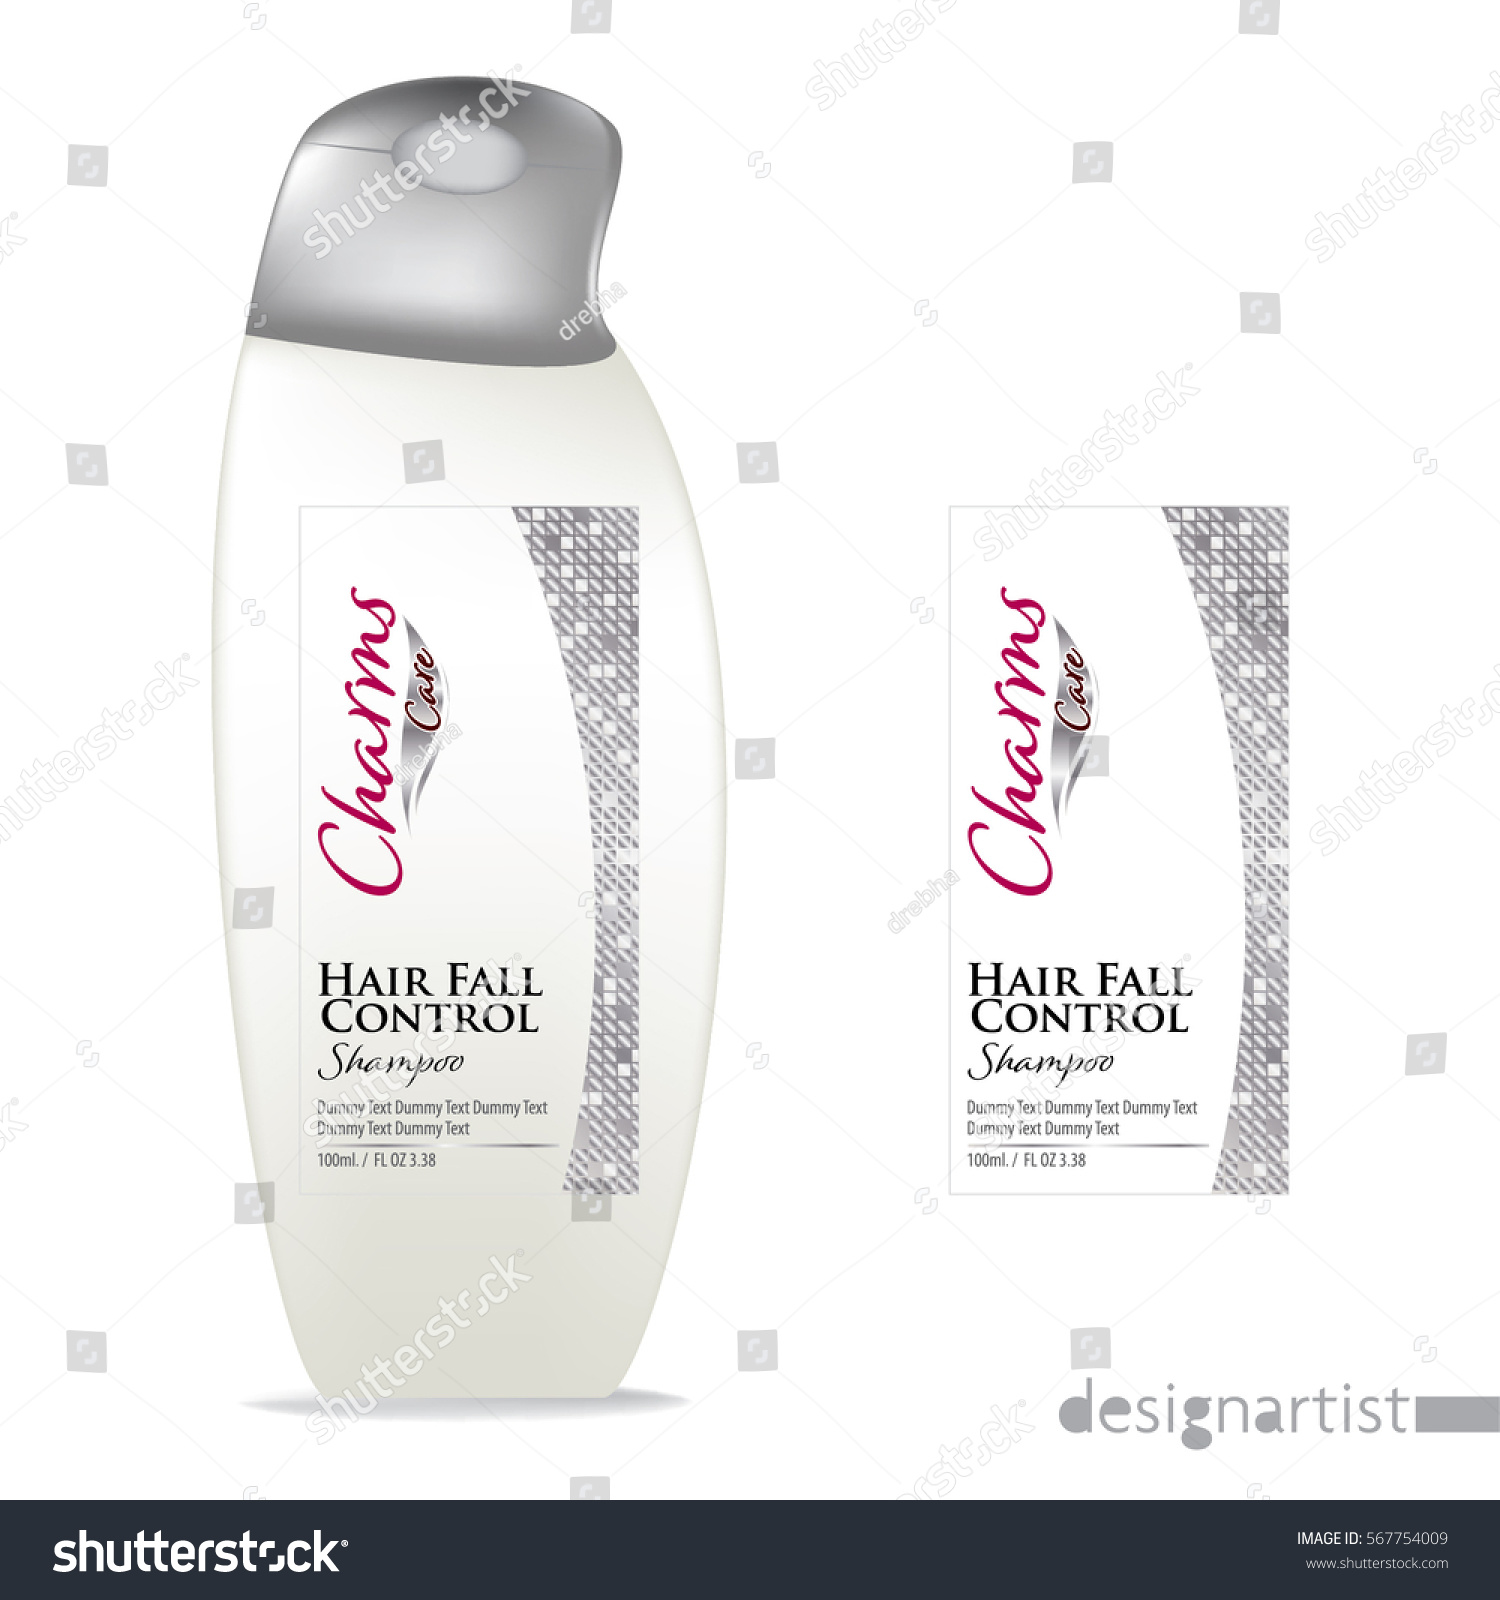 Cosmetic Packaging Design Shampoo Bottle Templates Stock Vector ...